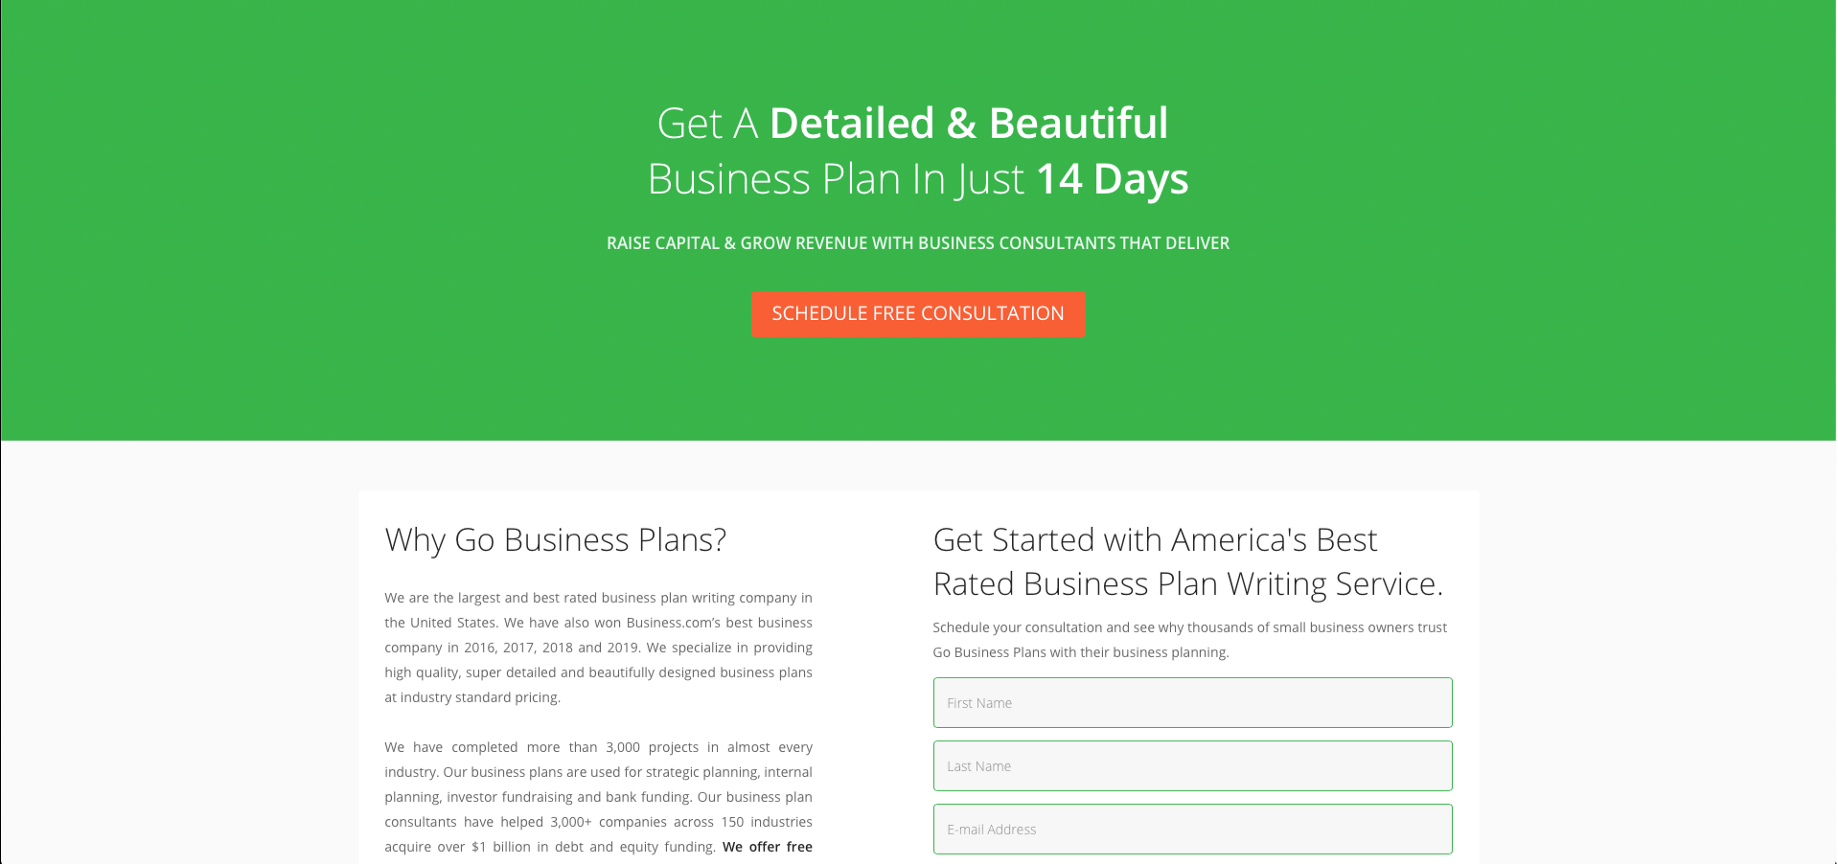 Business plan writing service review